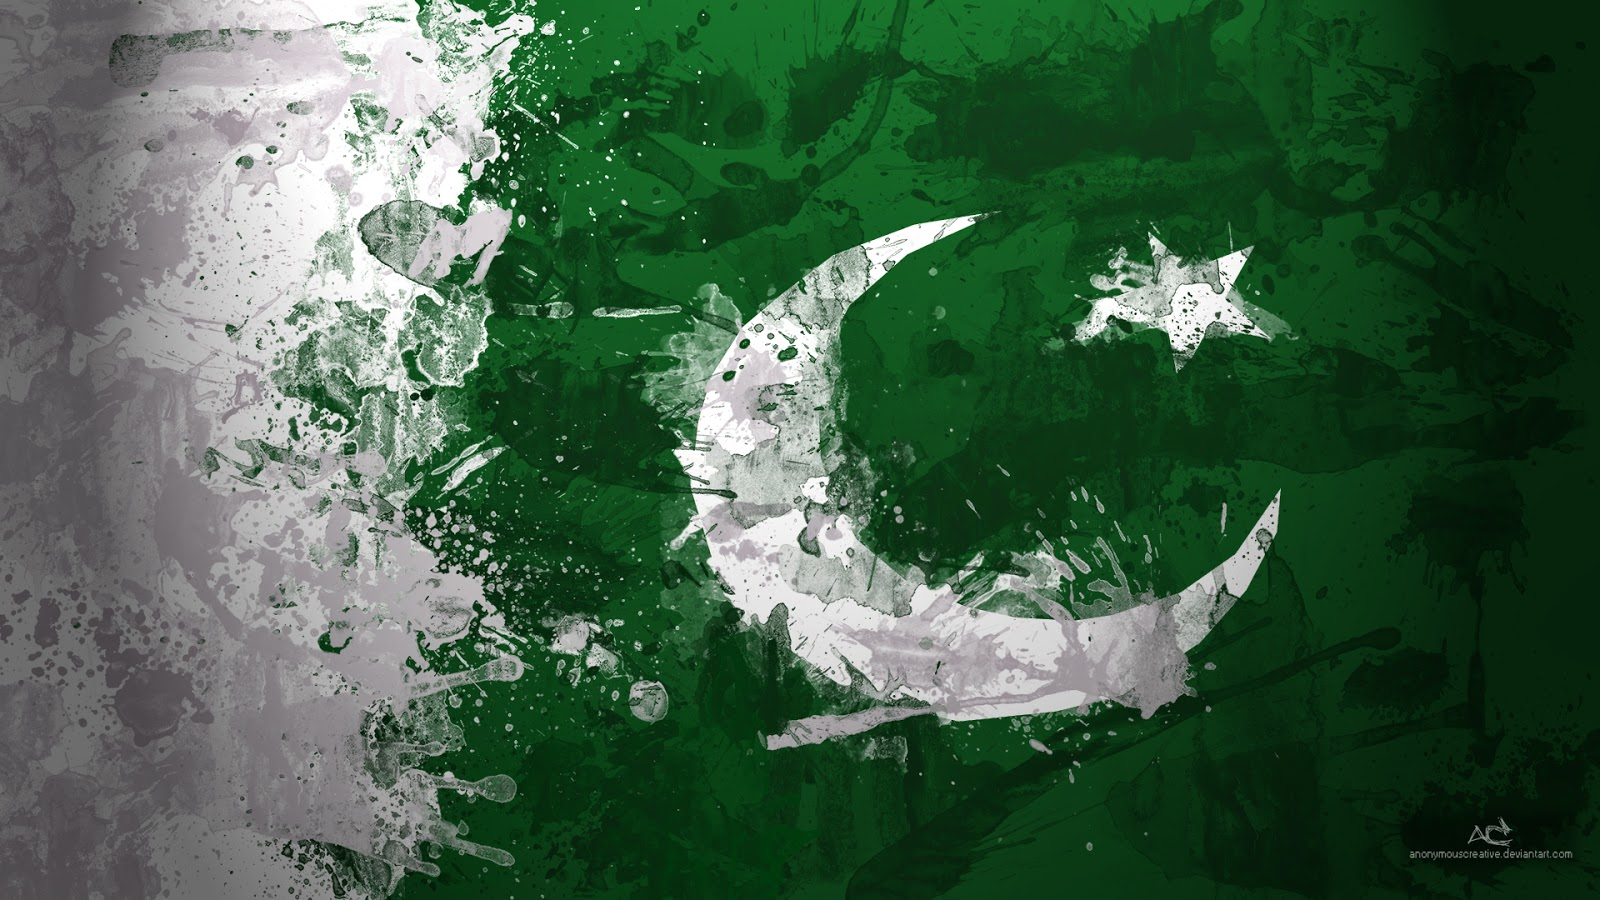 http://3.bp.blogspot.com/-yMsX9YXg3Ag/UMeudF9XNiI/AAAAAAAAA2g/kYqoDNJAsrQ/s1600/Pakistan+Flag+New+HD+Wallpapers+(1).jpg